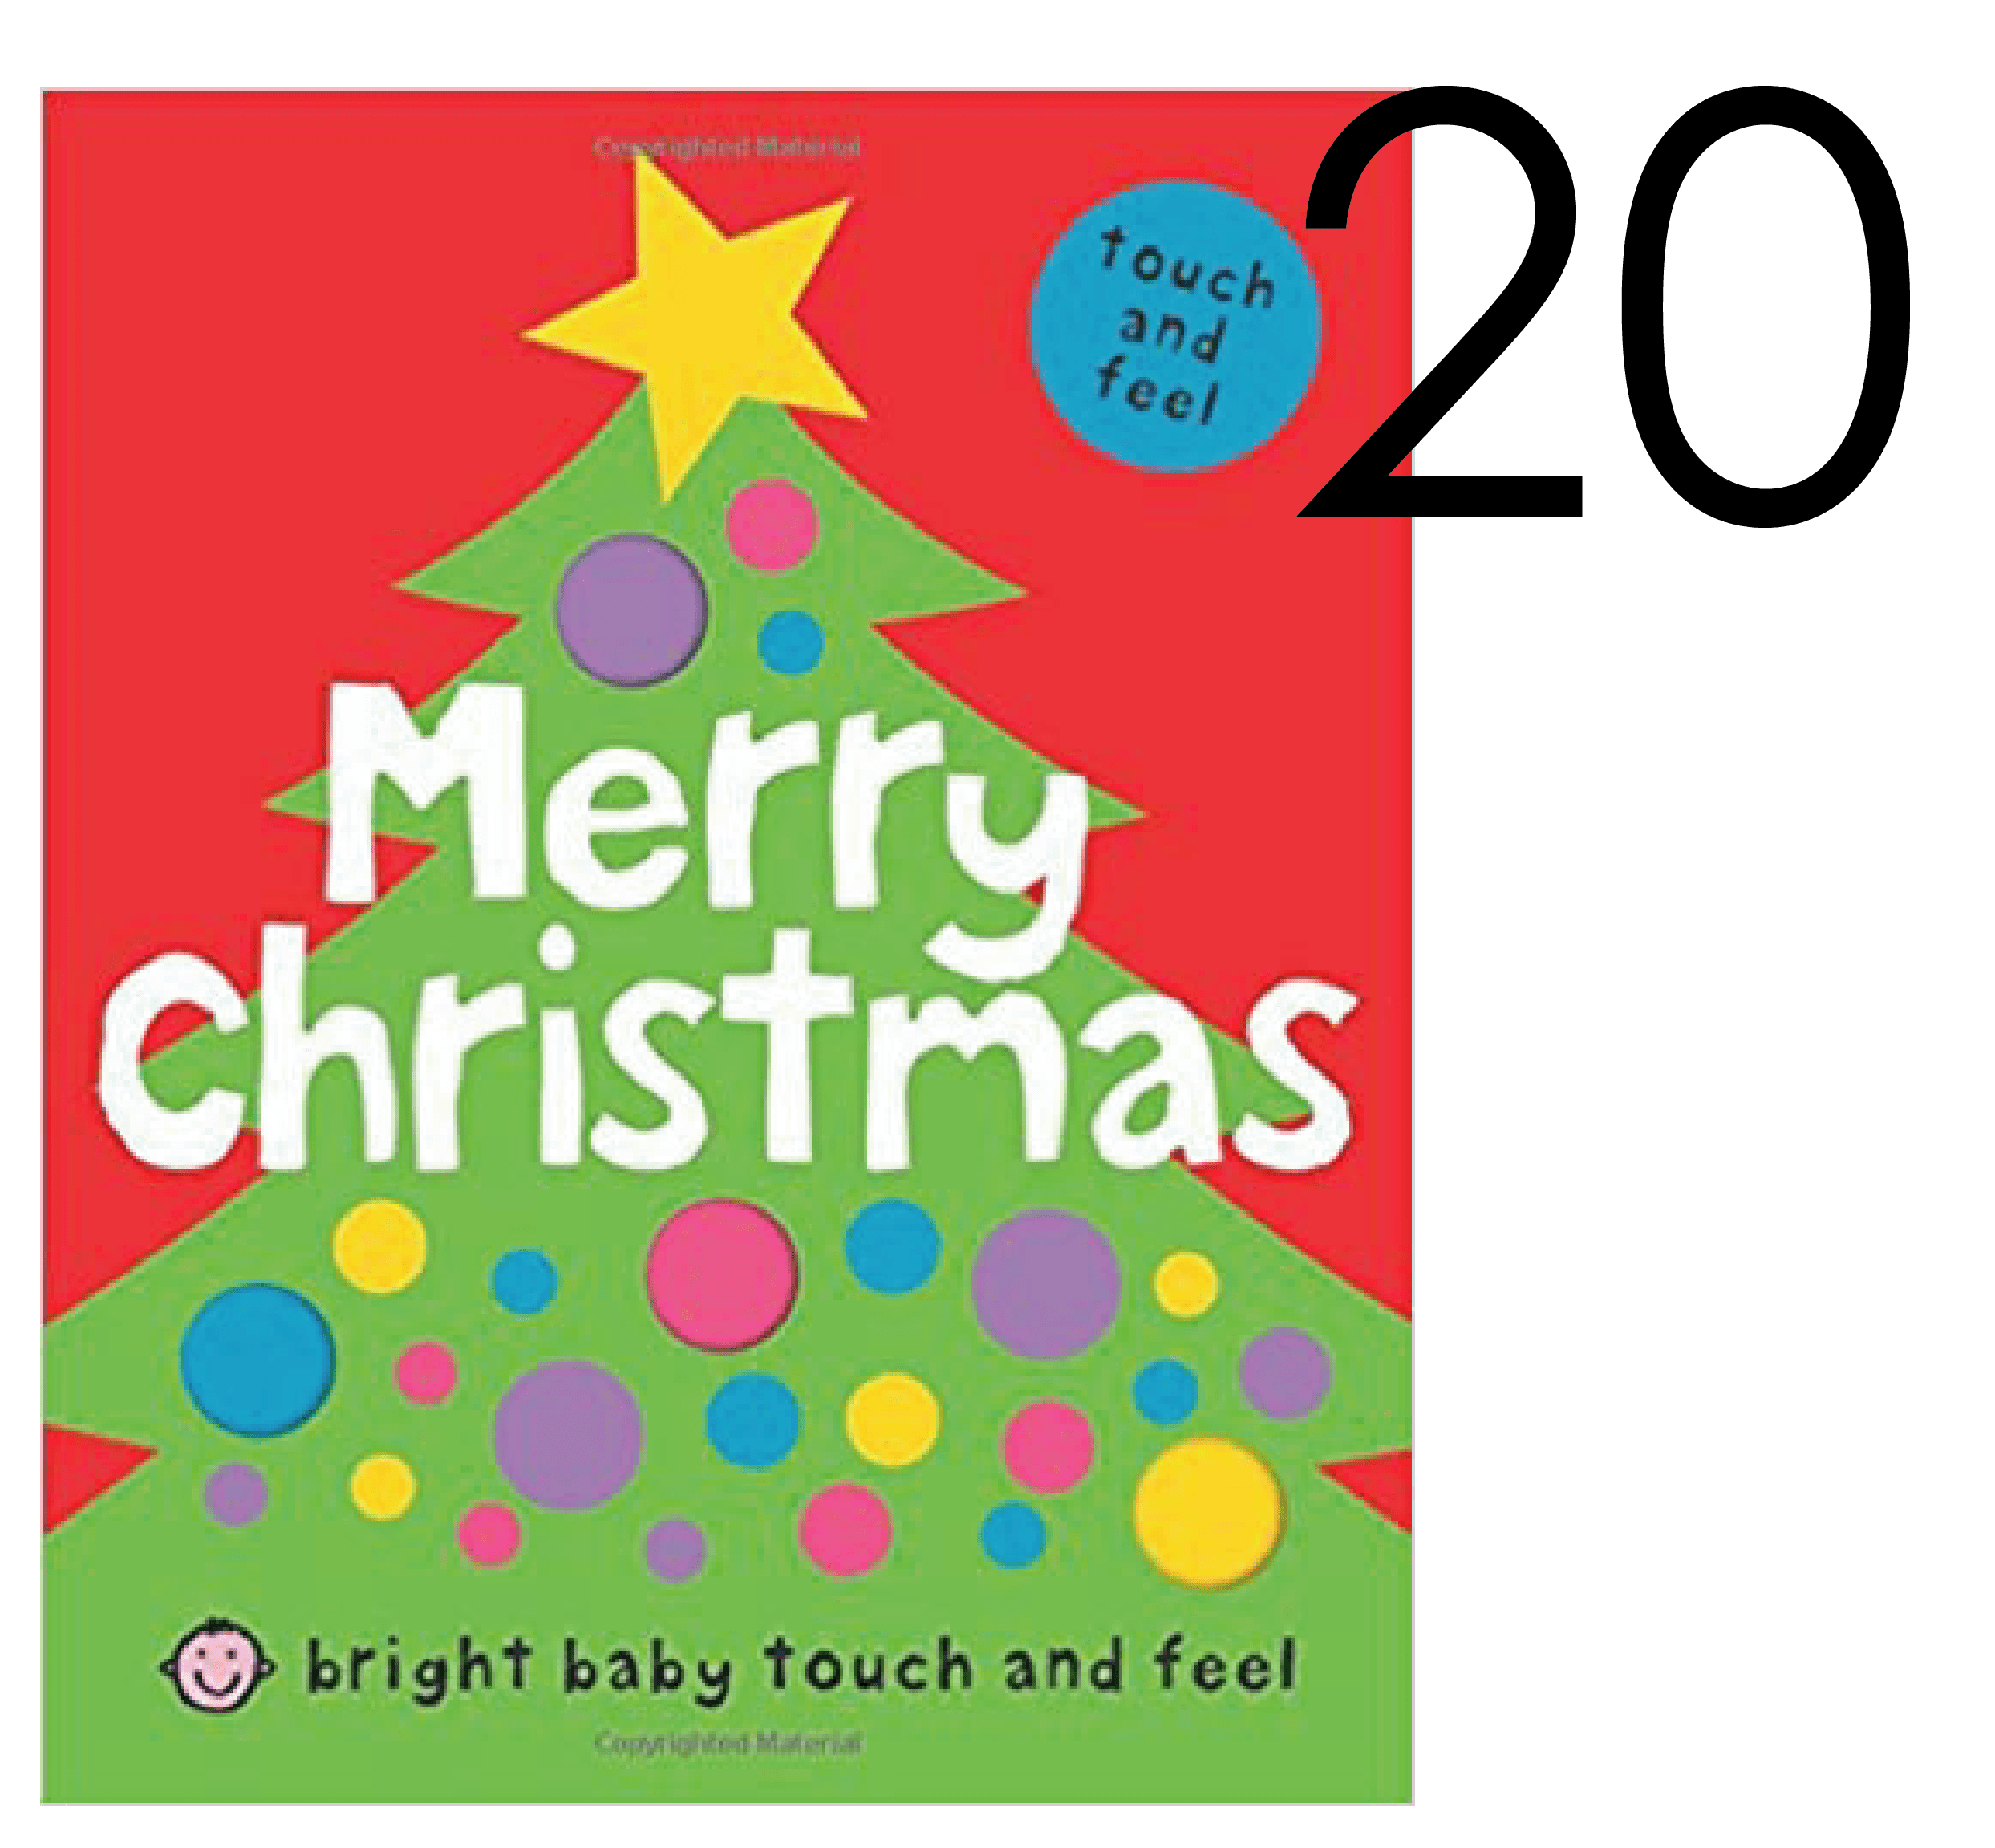 Merry Christmas Bright Baby Touch and Feel Holiday Book List